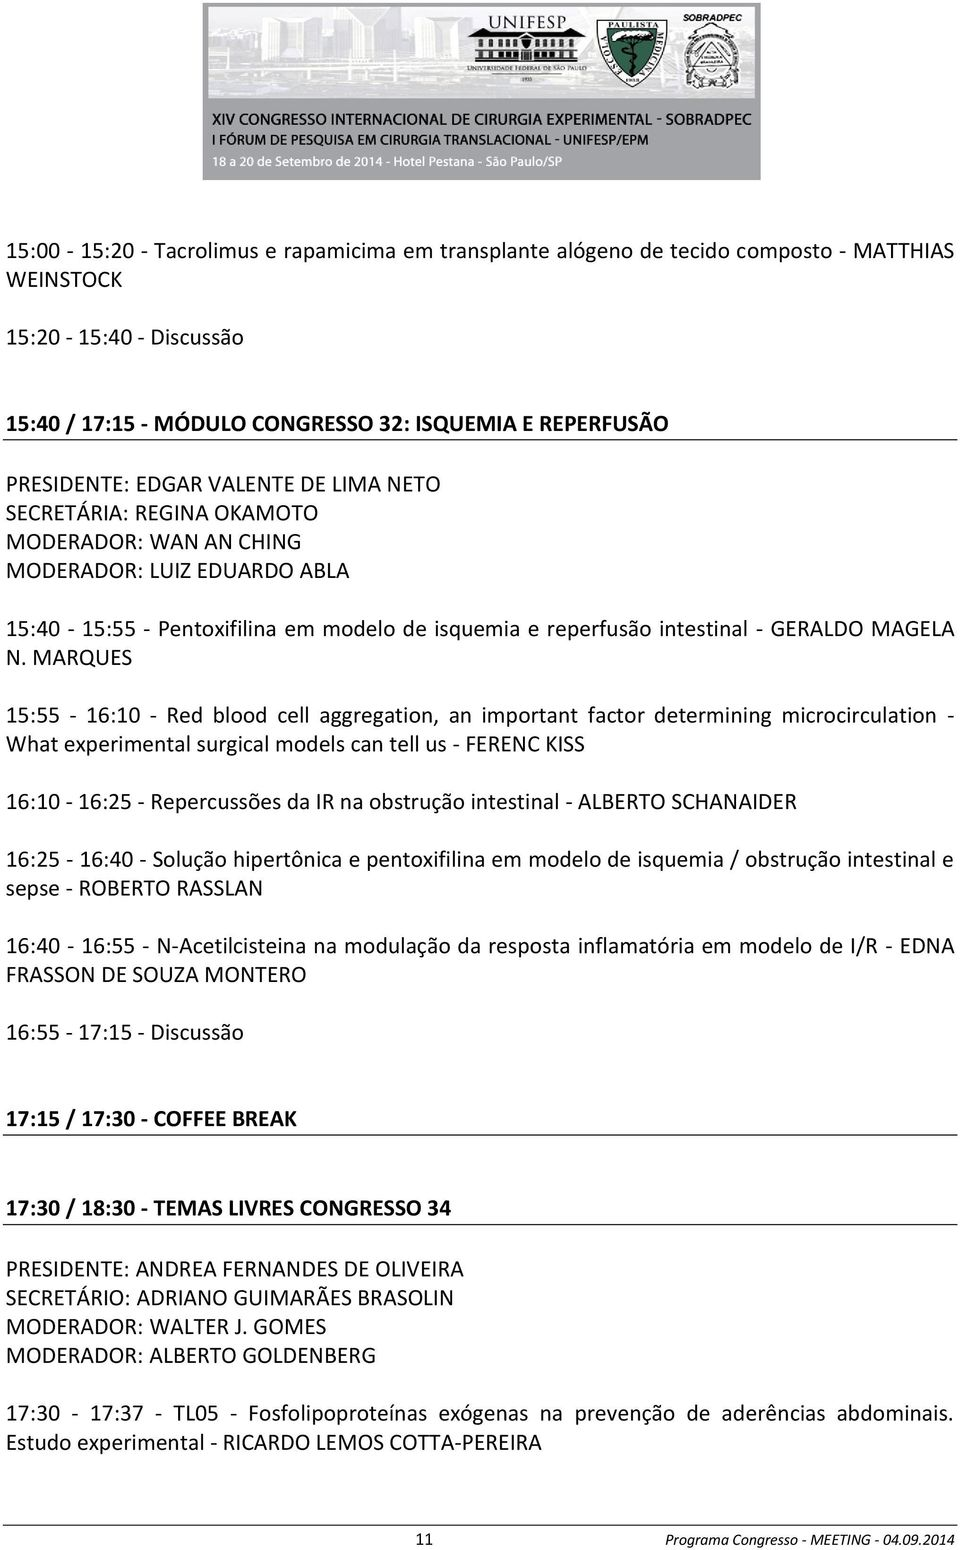 MARQUES 15:55-16:10 - Red blood cell aggregation, an important factor determining microcirculation - What experimental surgical models can tell us - FERENC KISS 16:10-16:25 - Repercussões da IR na